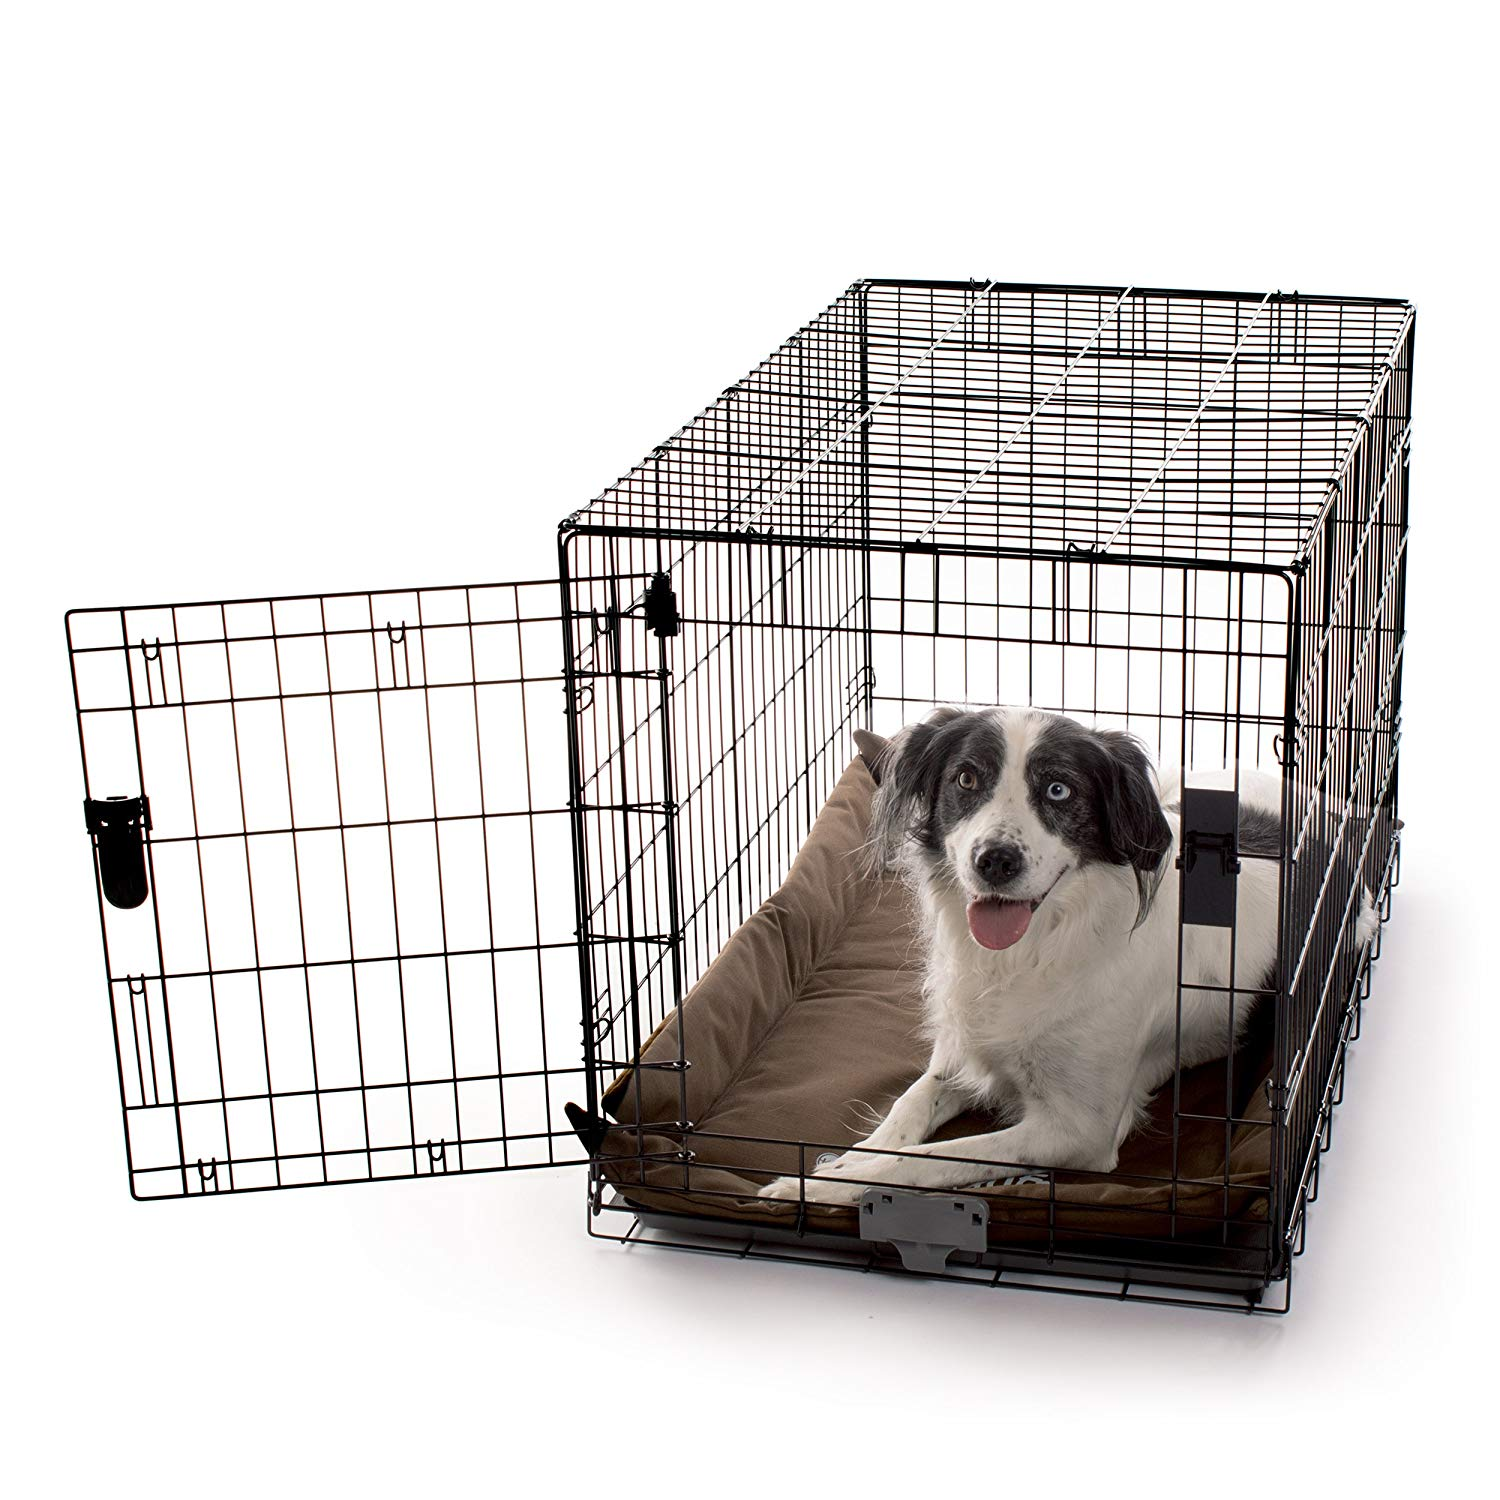 "K&H Pet Products K-9 Ruff n' Tuff Crate Pad Large Chocolate (25"" x 37"") - 1260 Denier Rip-Stop Polyester for Pets That Need Extra Tough Fabric"